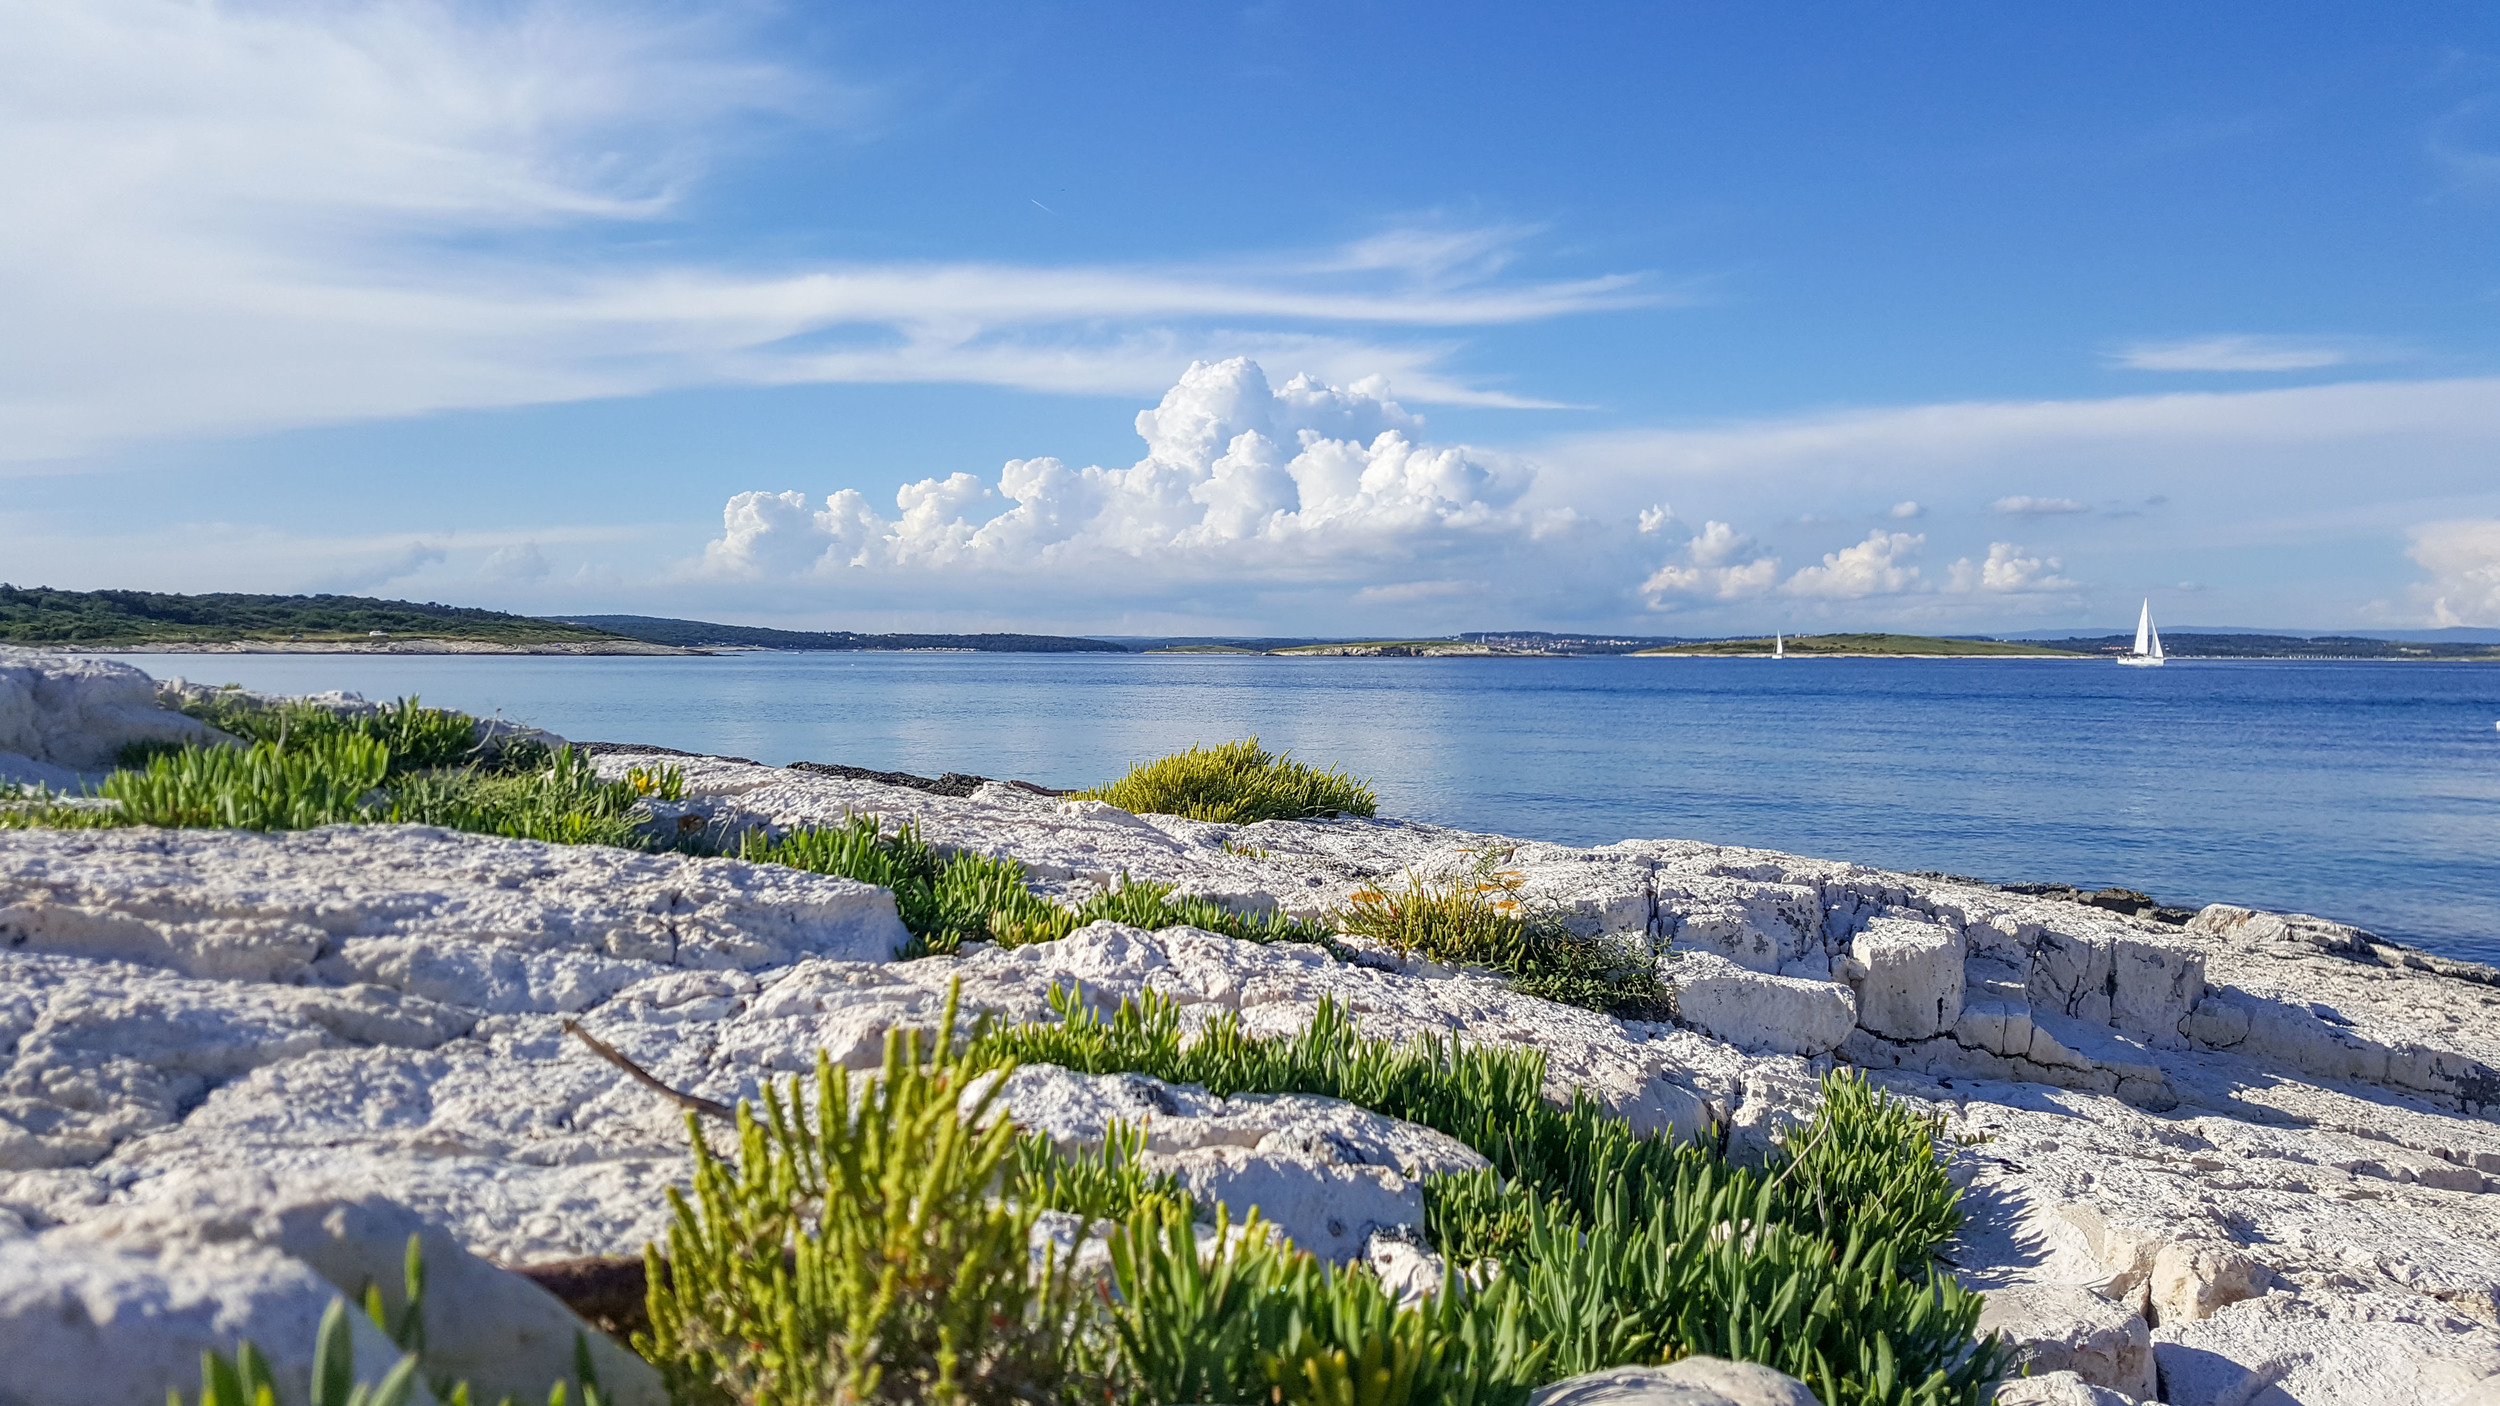 Banjole Croazia A Week In Istria Day By Day Itinerary The Mint Story